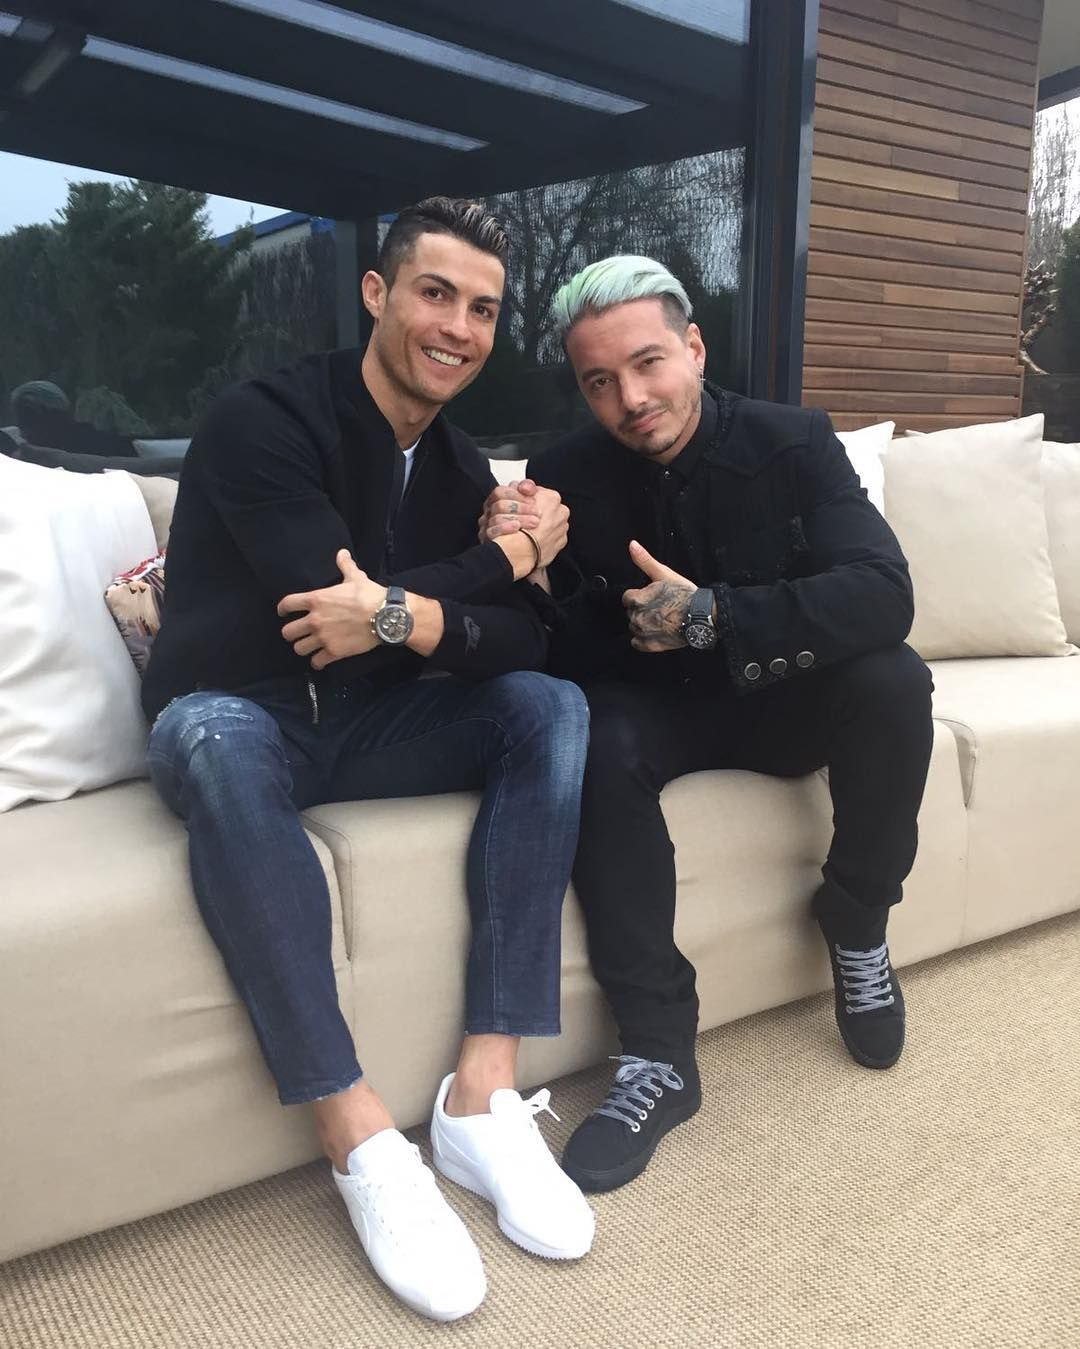 cc5f85e4cd0b Cristiano Ronaldo Wears Nike Jacket, Sneakers, and Dsquared2 Jeans with J  Balvin in Chanel Jacket   UpscaleHype